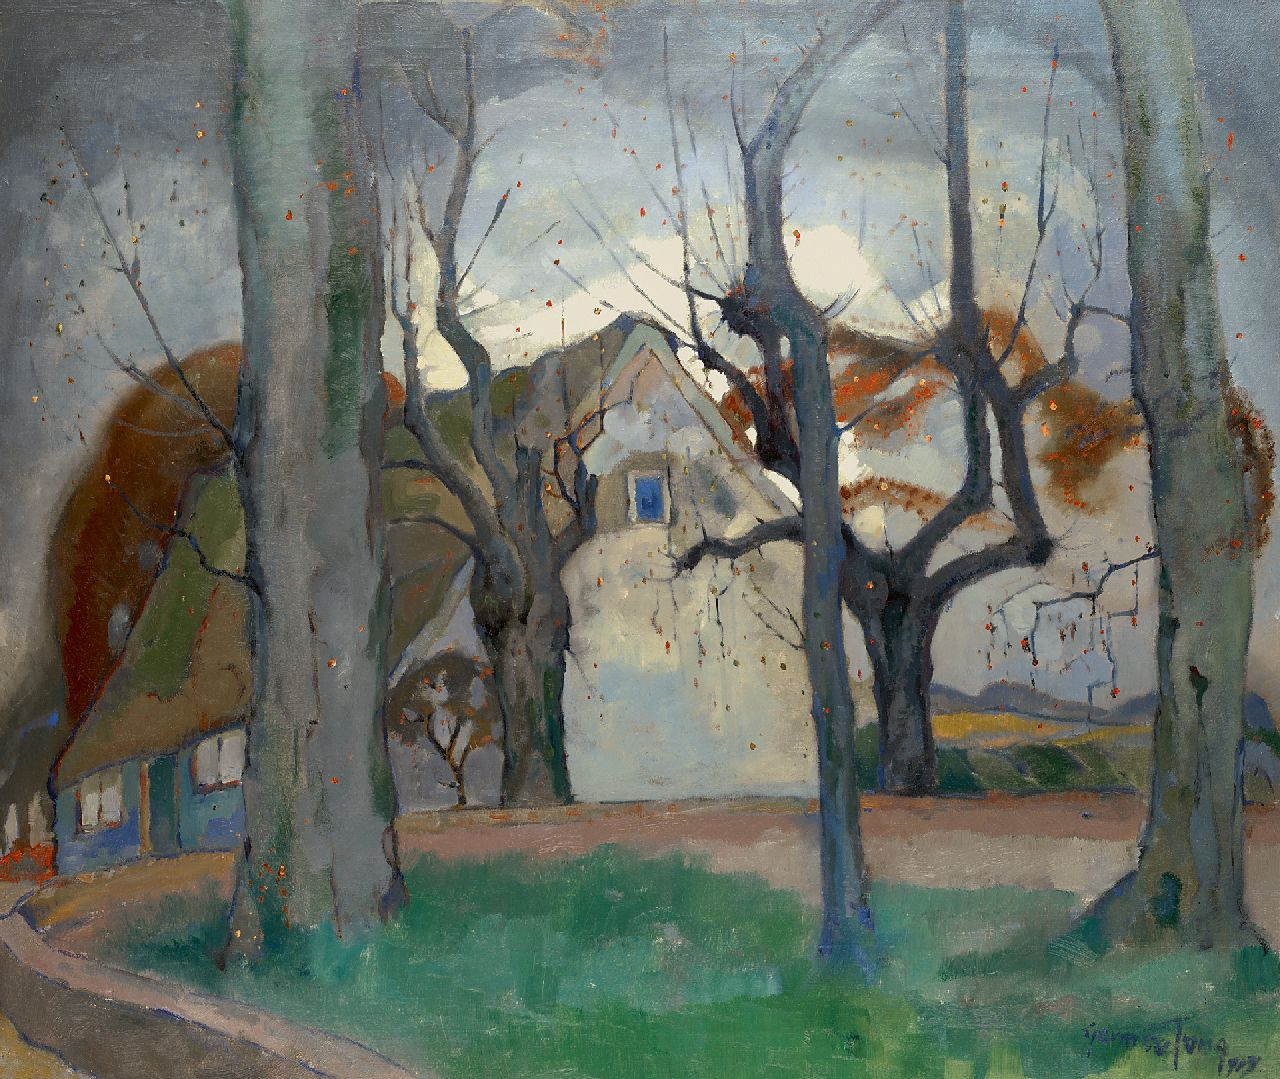 Jong G. de | Gerben 'Germ' de Jong | Paintings offered for sale | A farmhouse in winter, oil on canvas 85.8 x 100.7 cm, signed l.r. and painted in 1919